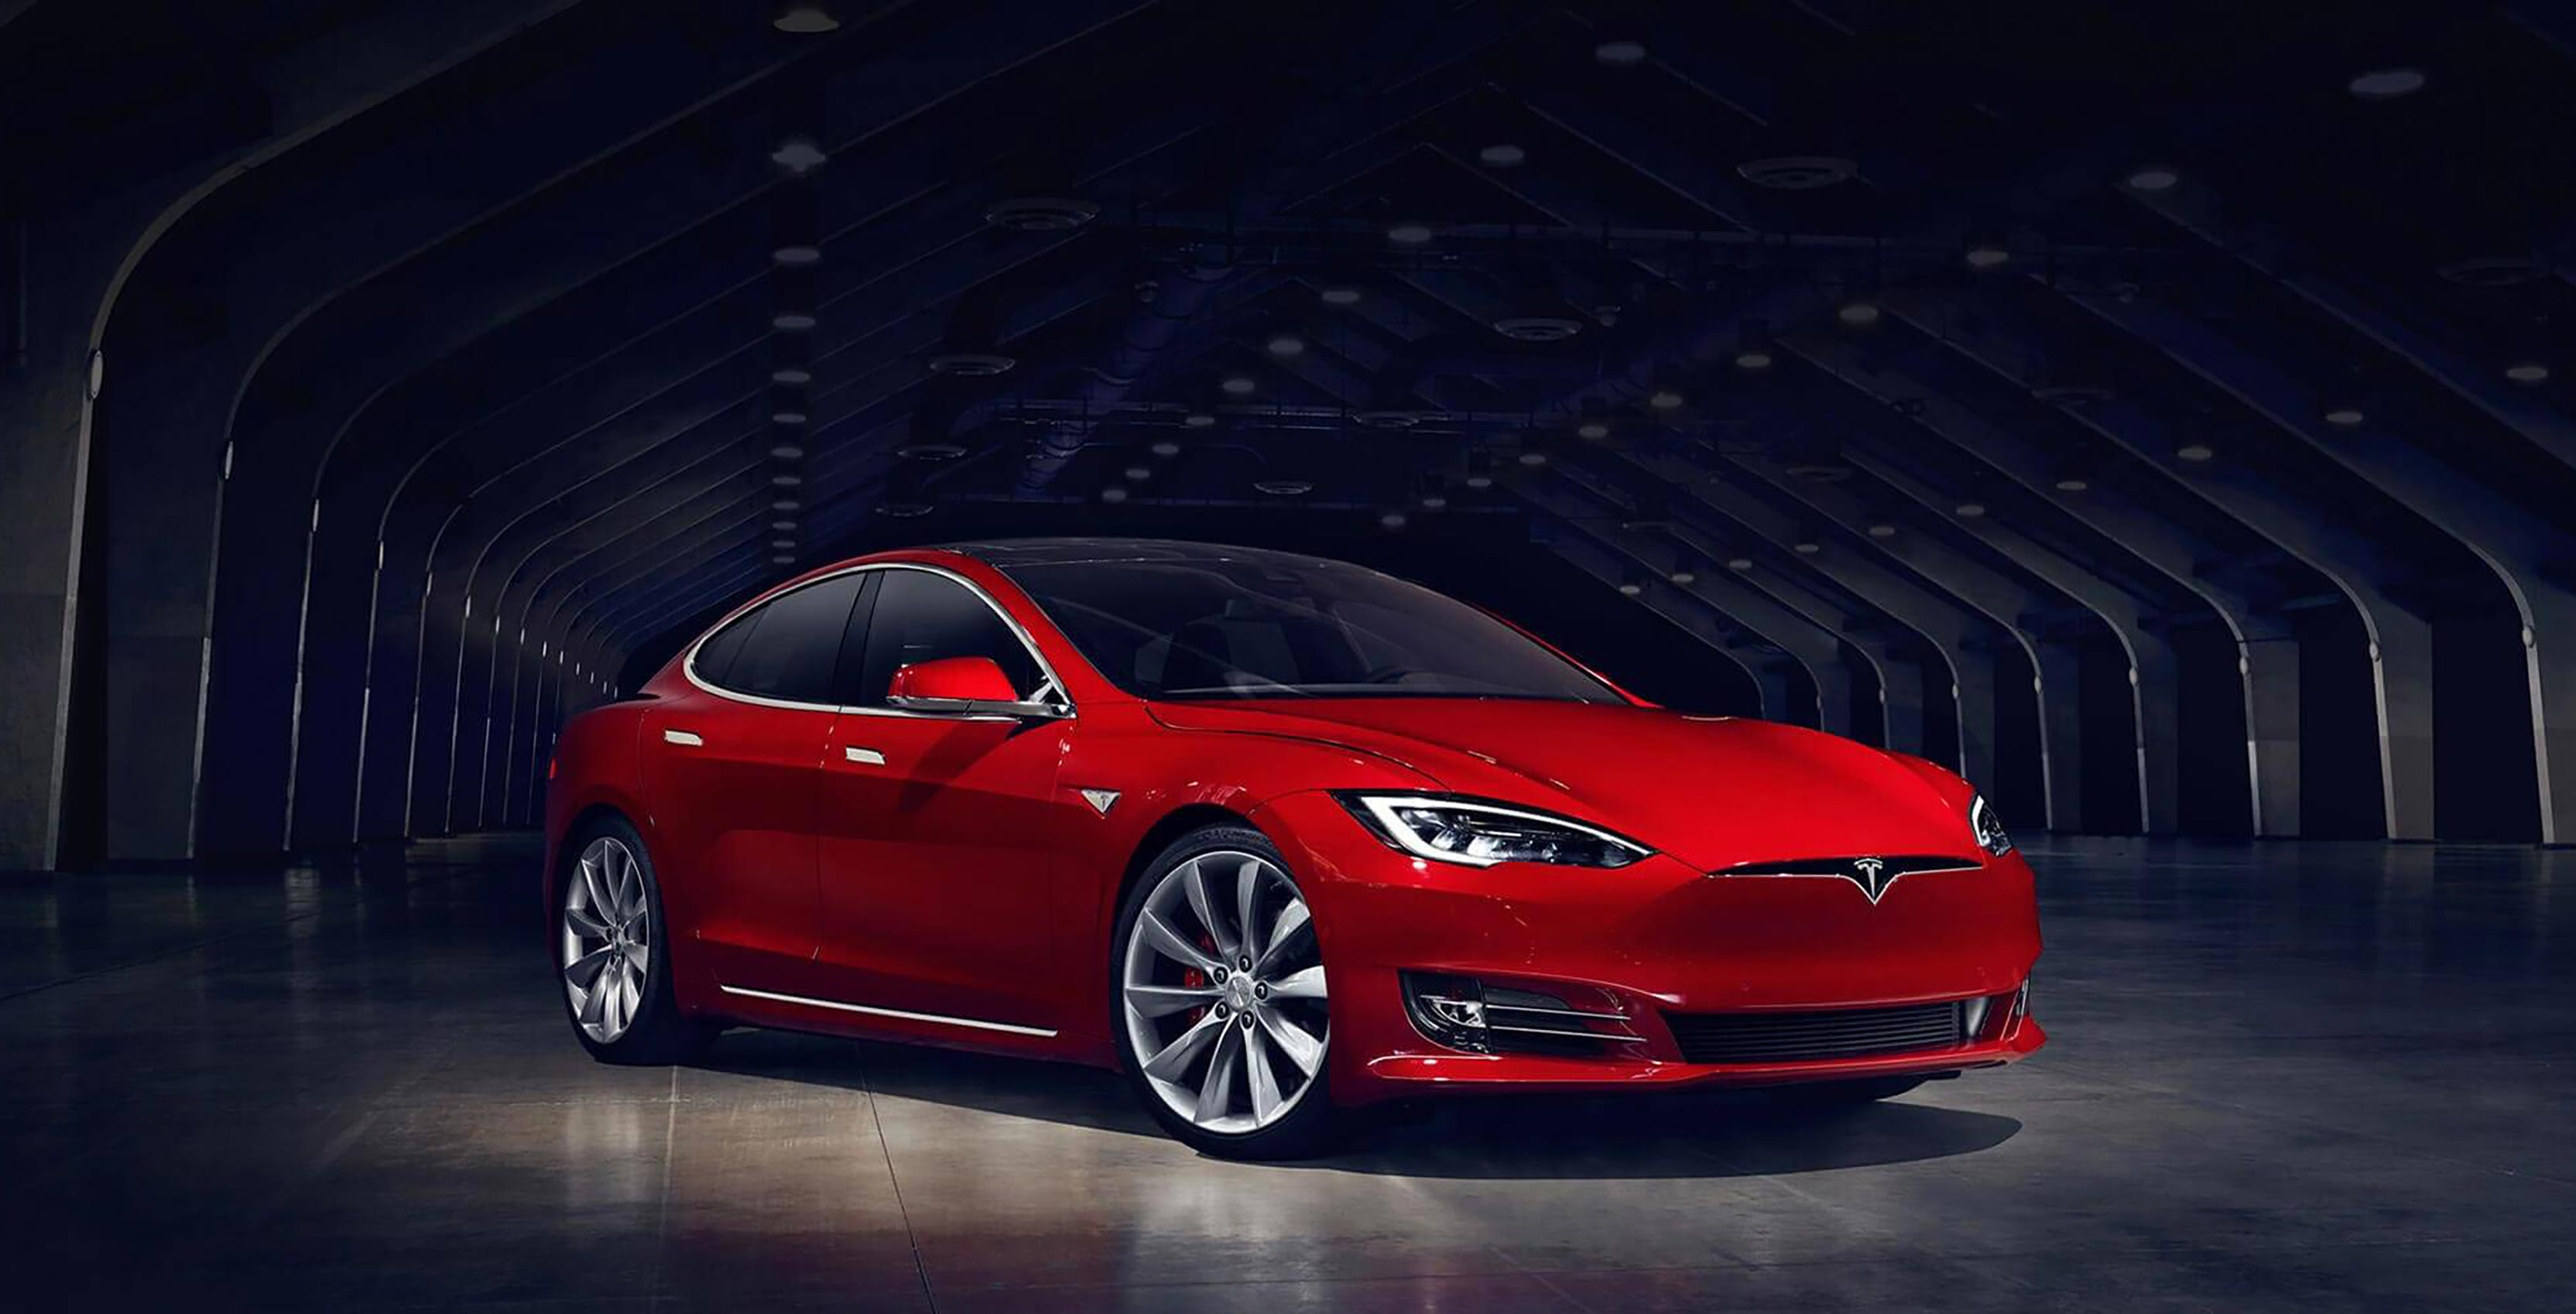 New Tesla update hints towards future changes for Model S, Model X